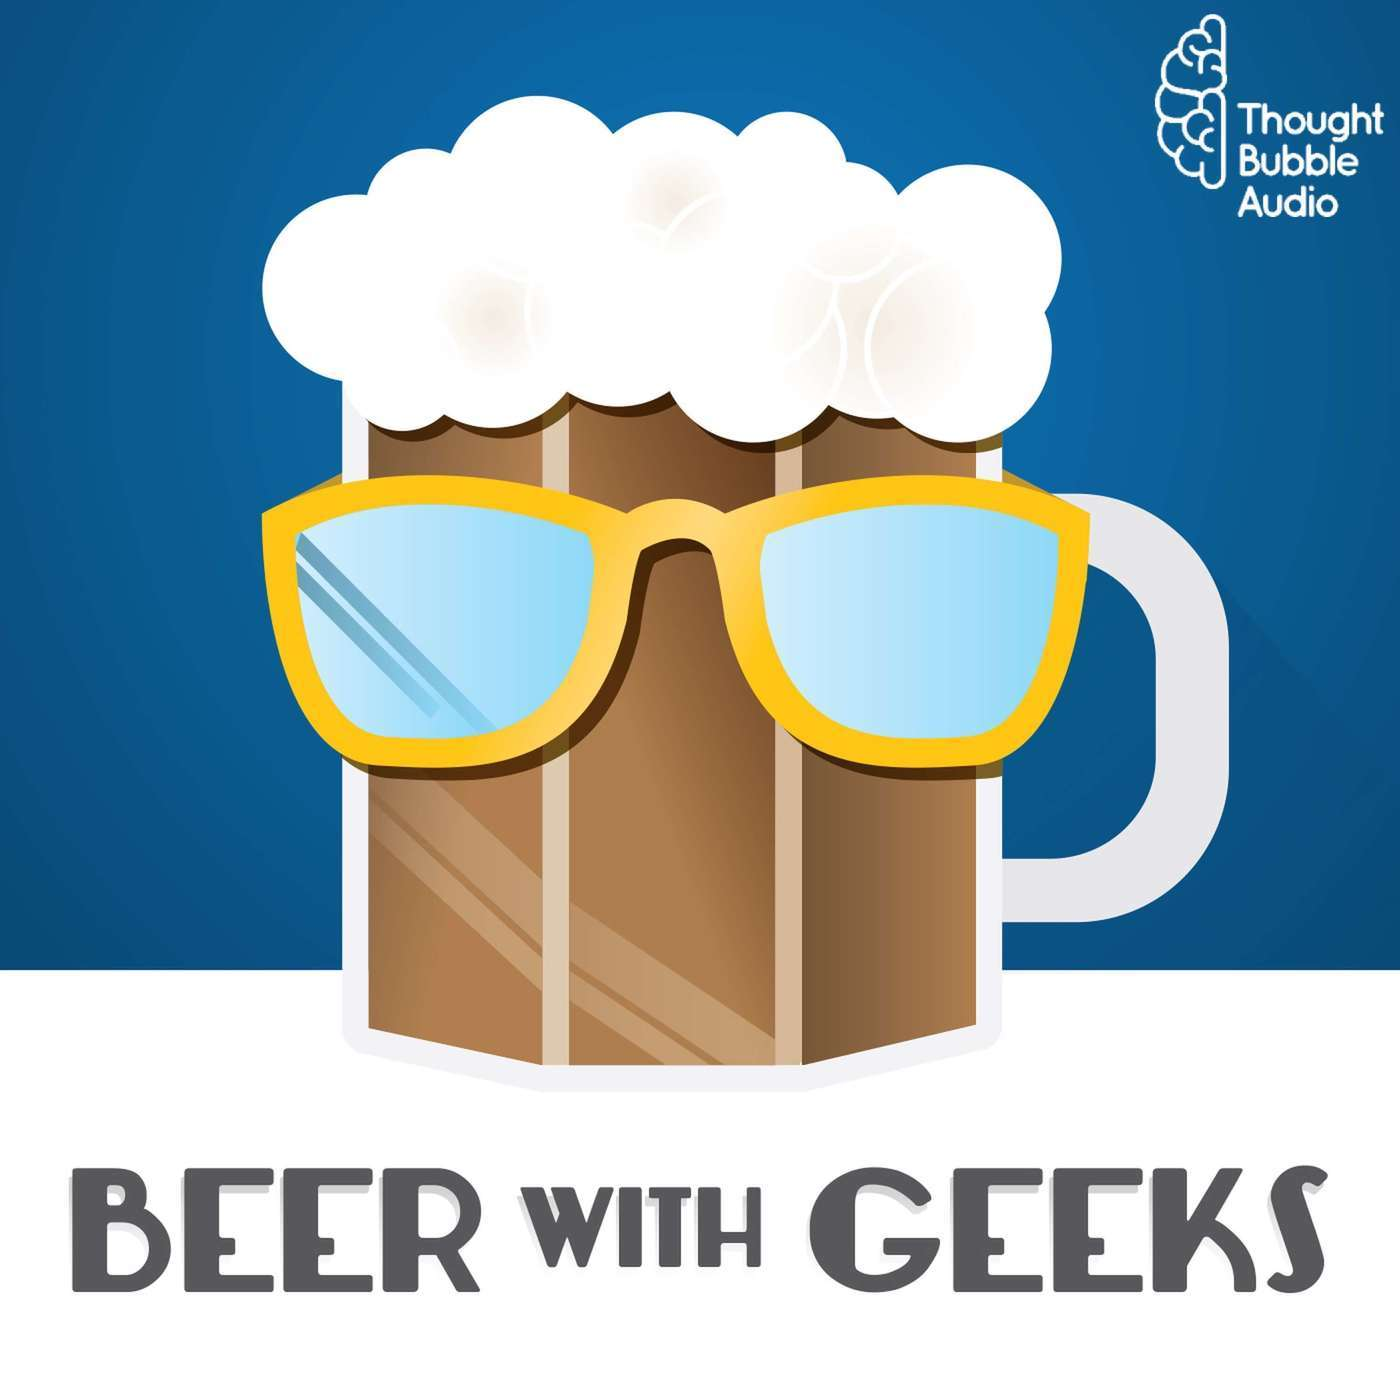 Beer With Geeks 183: Jaw-rassic Park